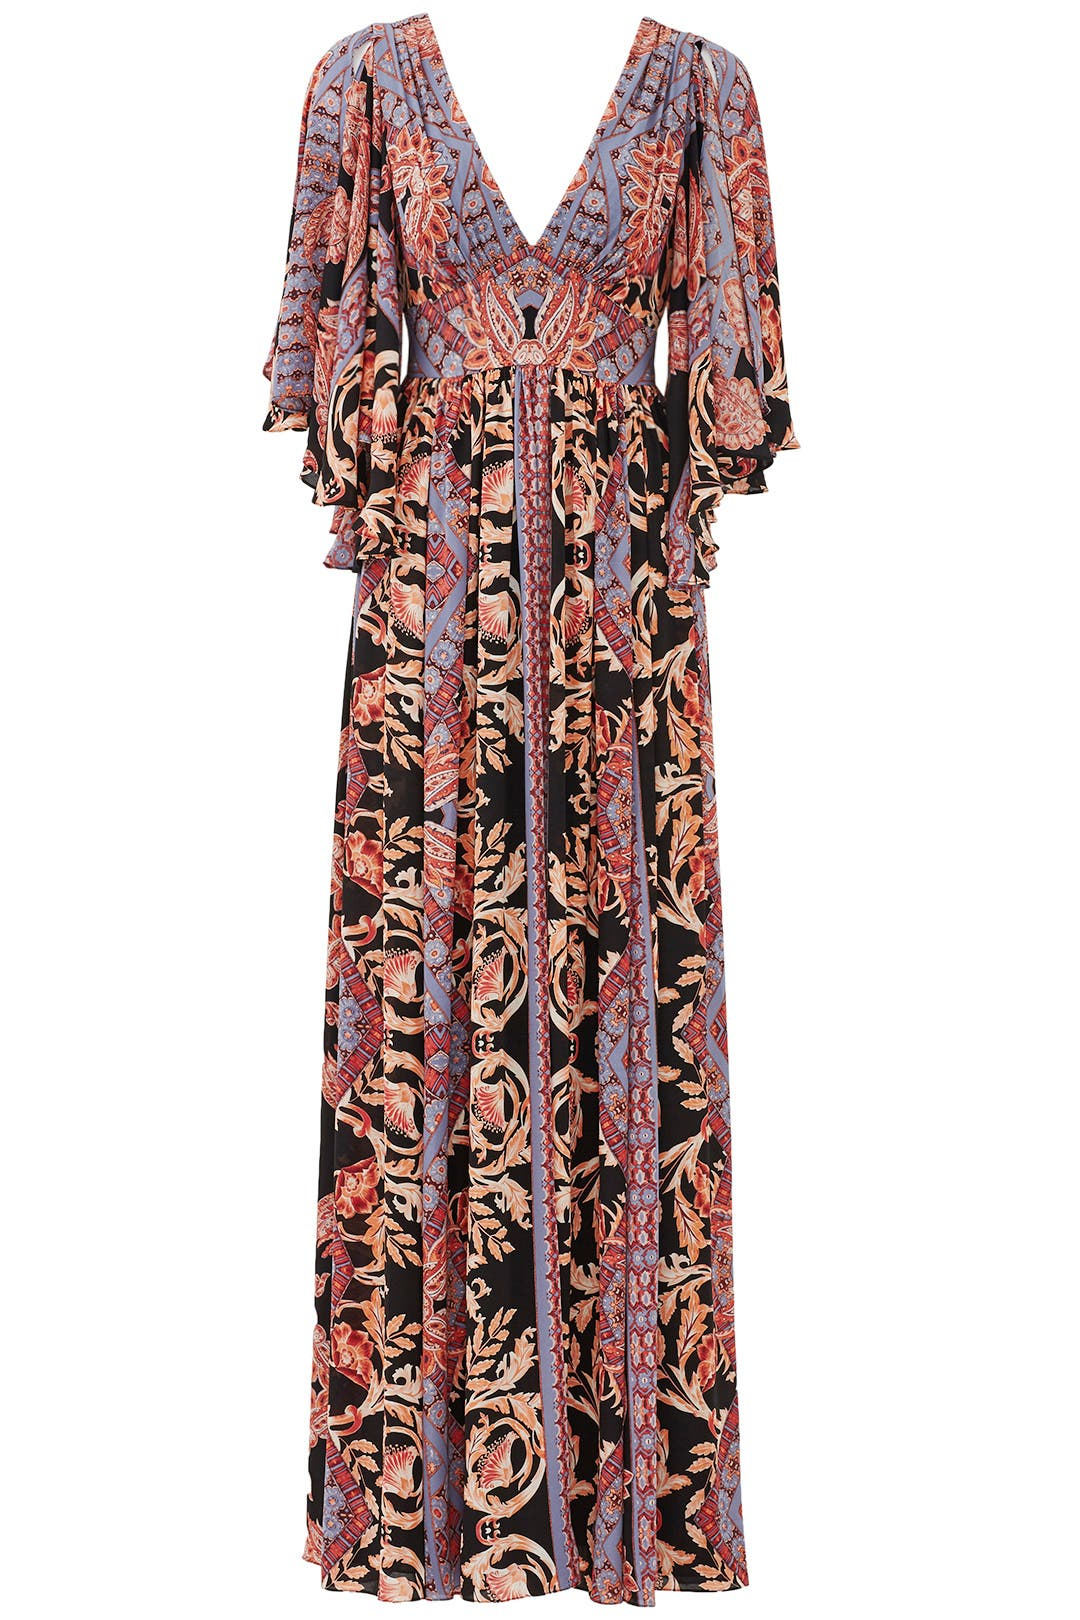 printed fern maxi party dress by free people for 77 rent the runway - Free Printed Pictures